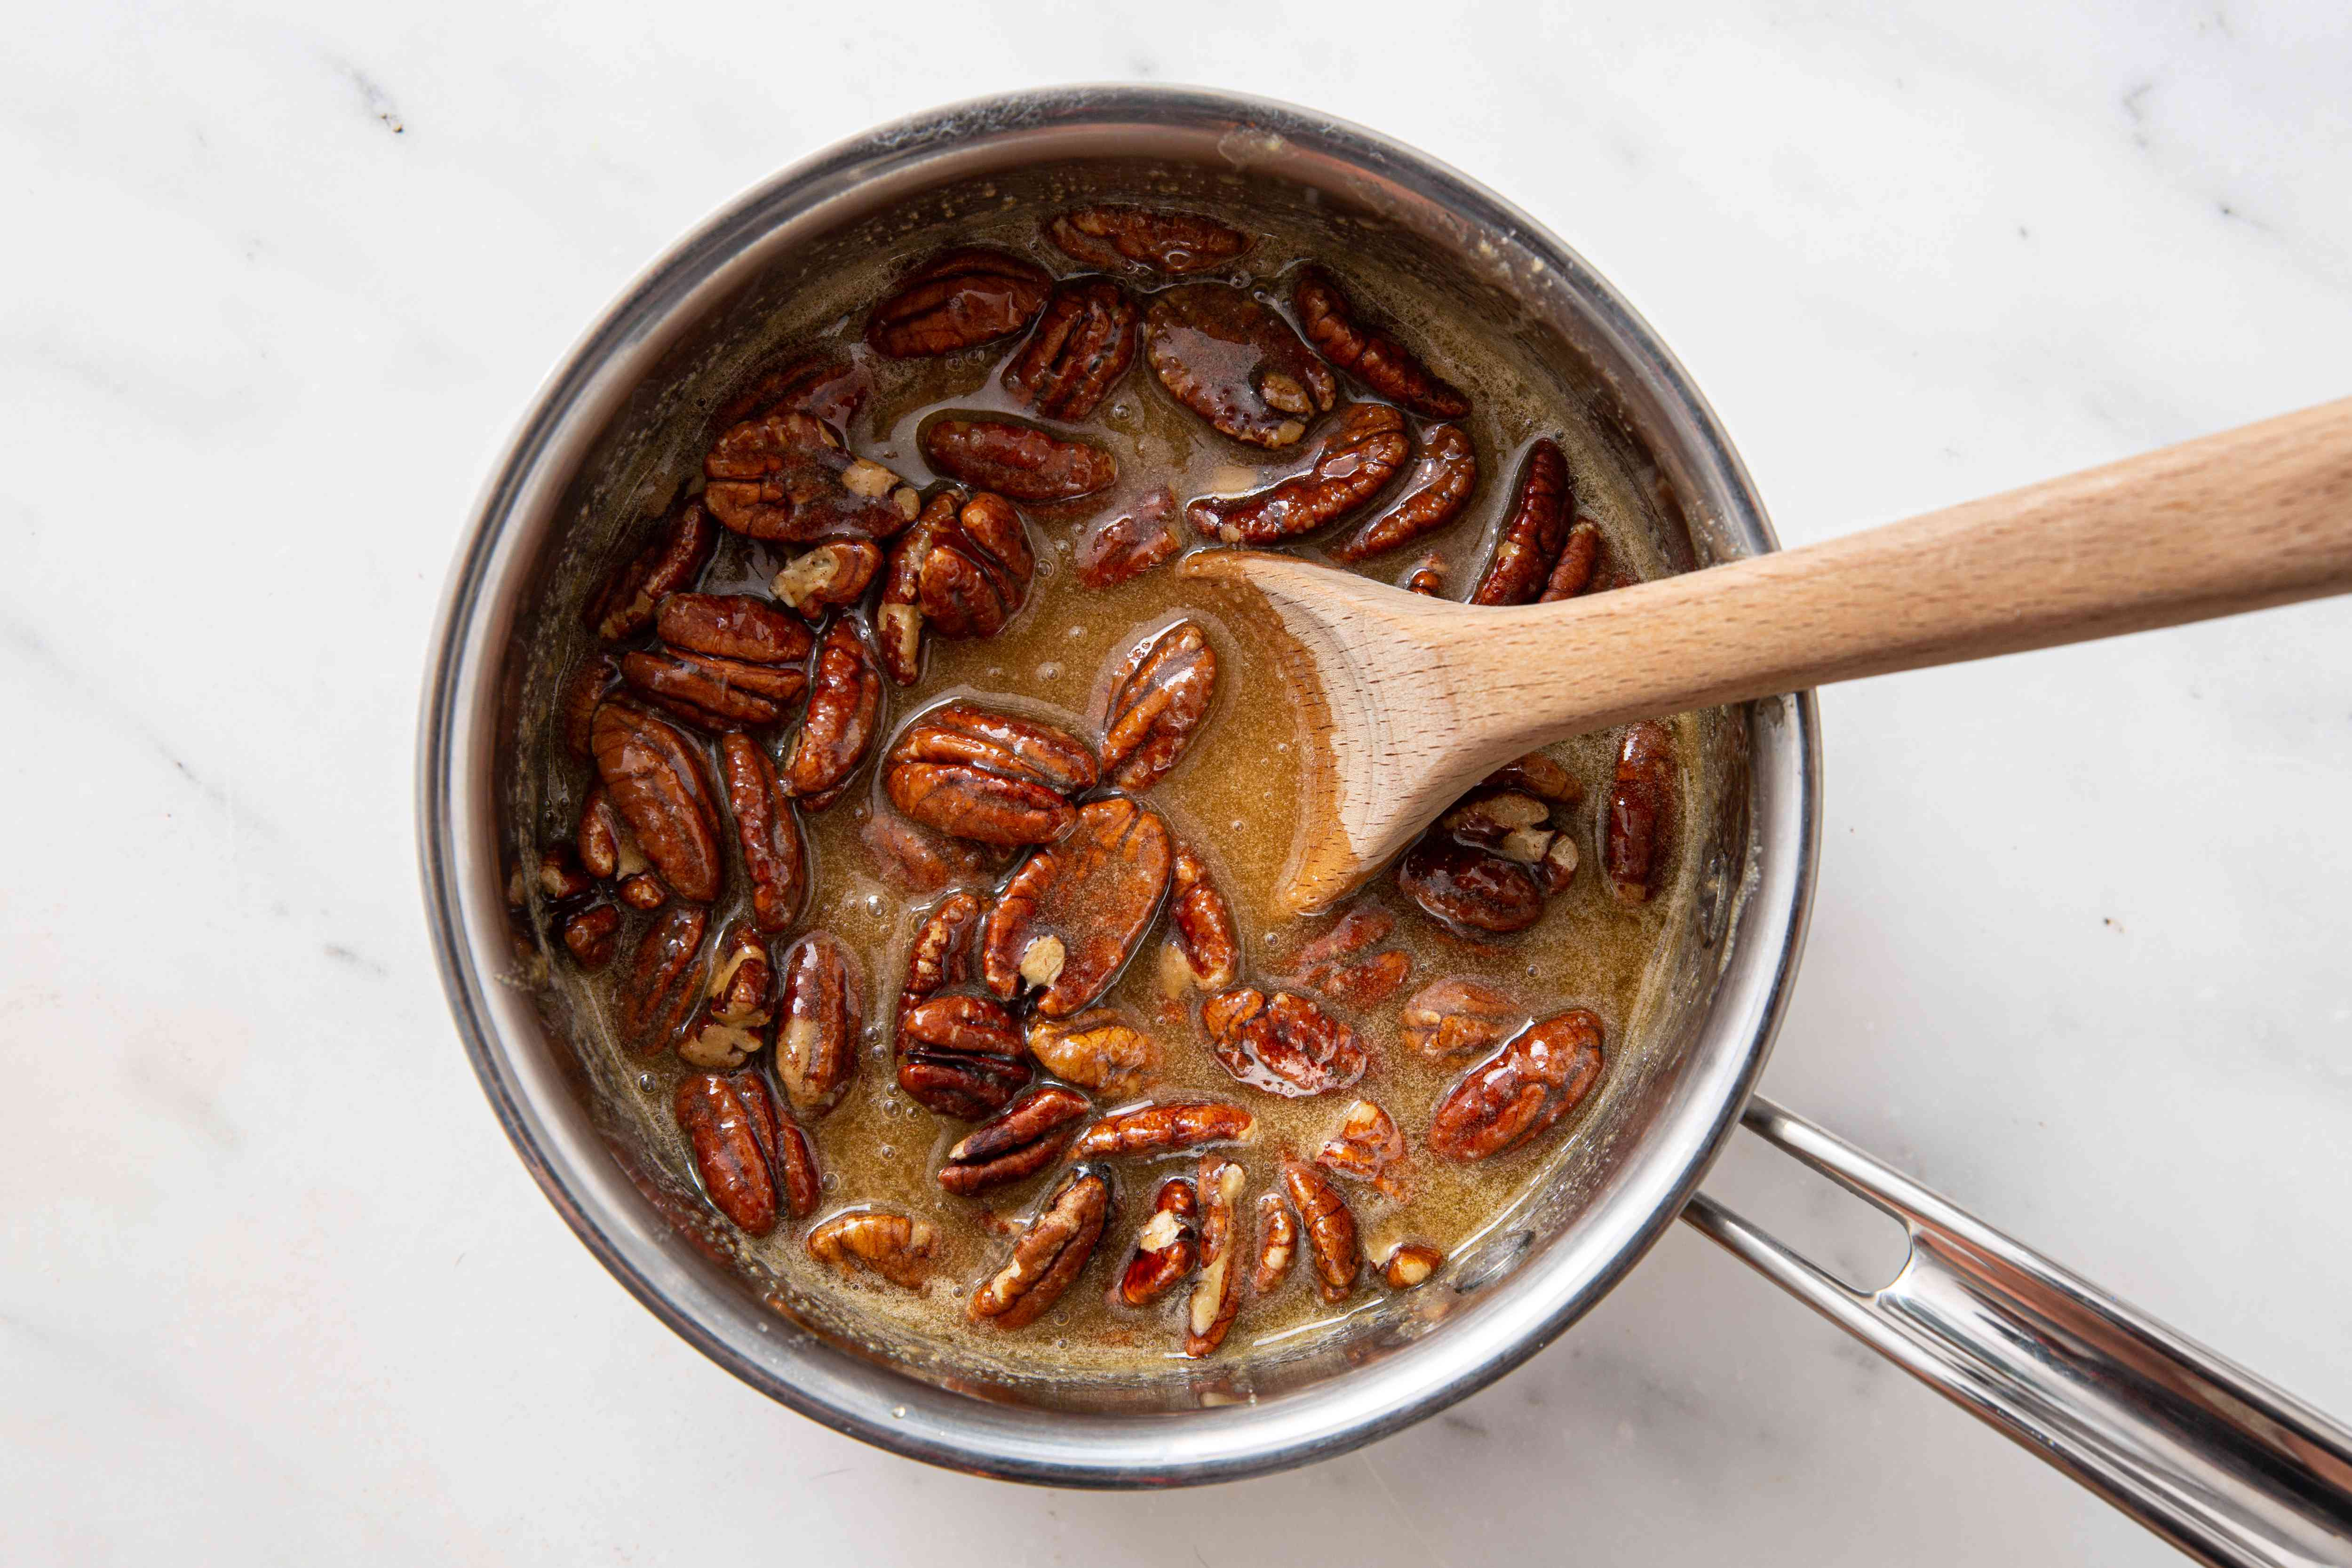 Whole pecans in the praline mixture in a saucepan